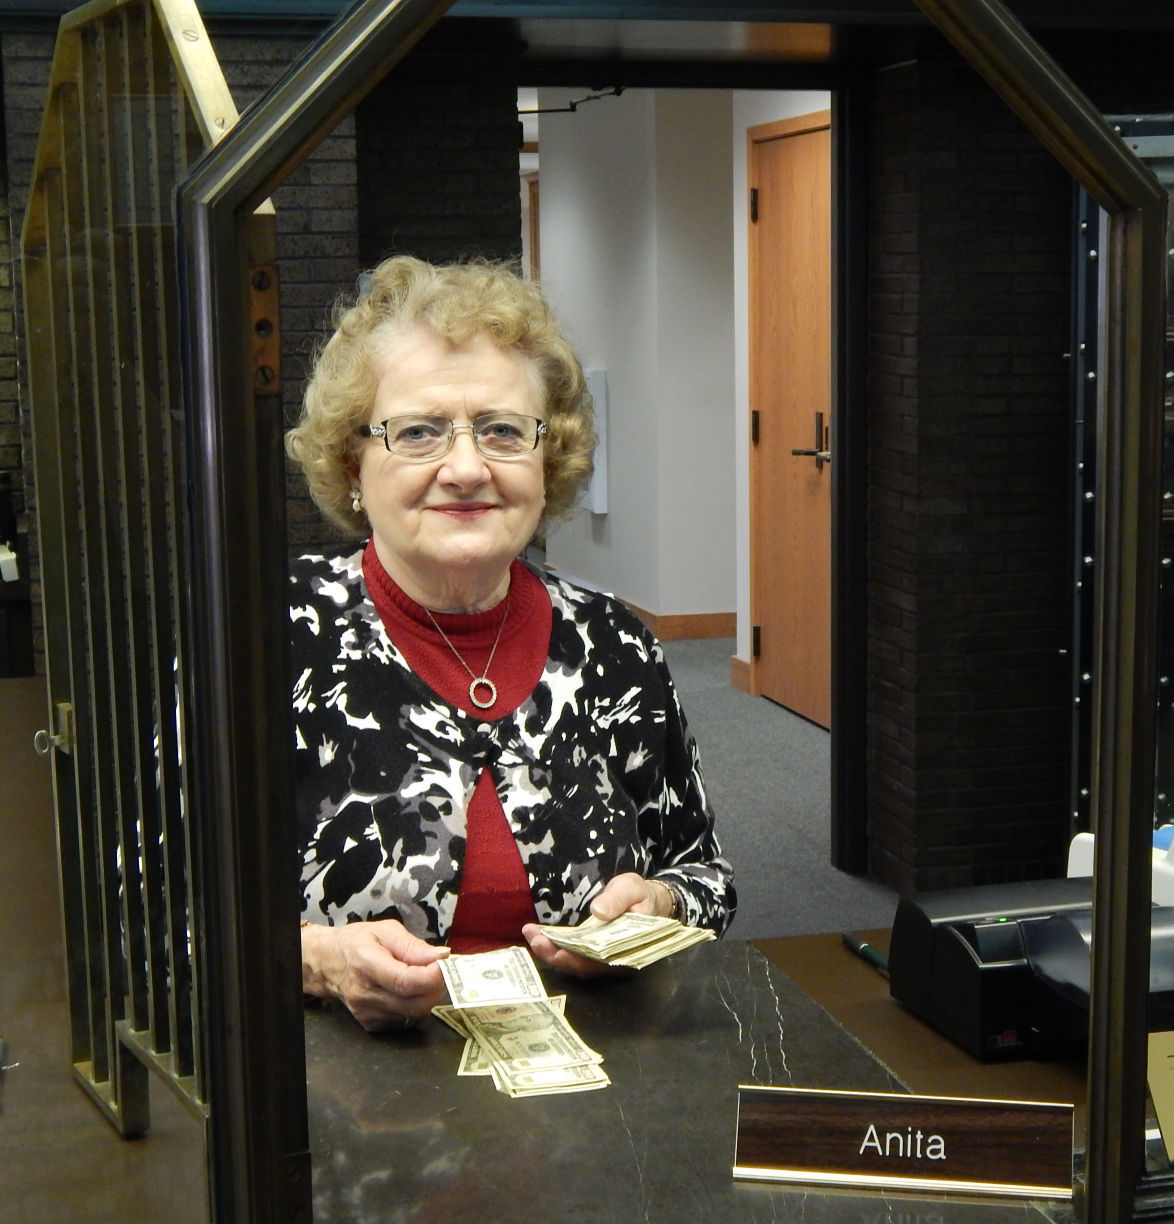 bank 159 w james st weisensel will be celebrating her 50th year at